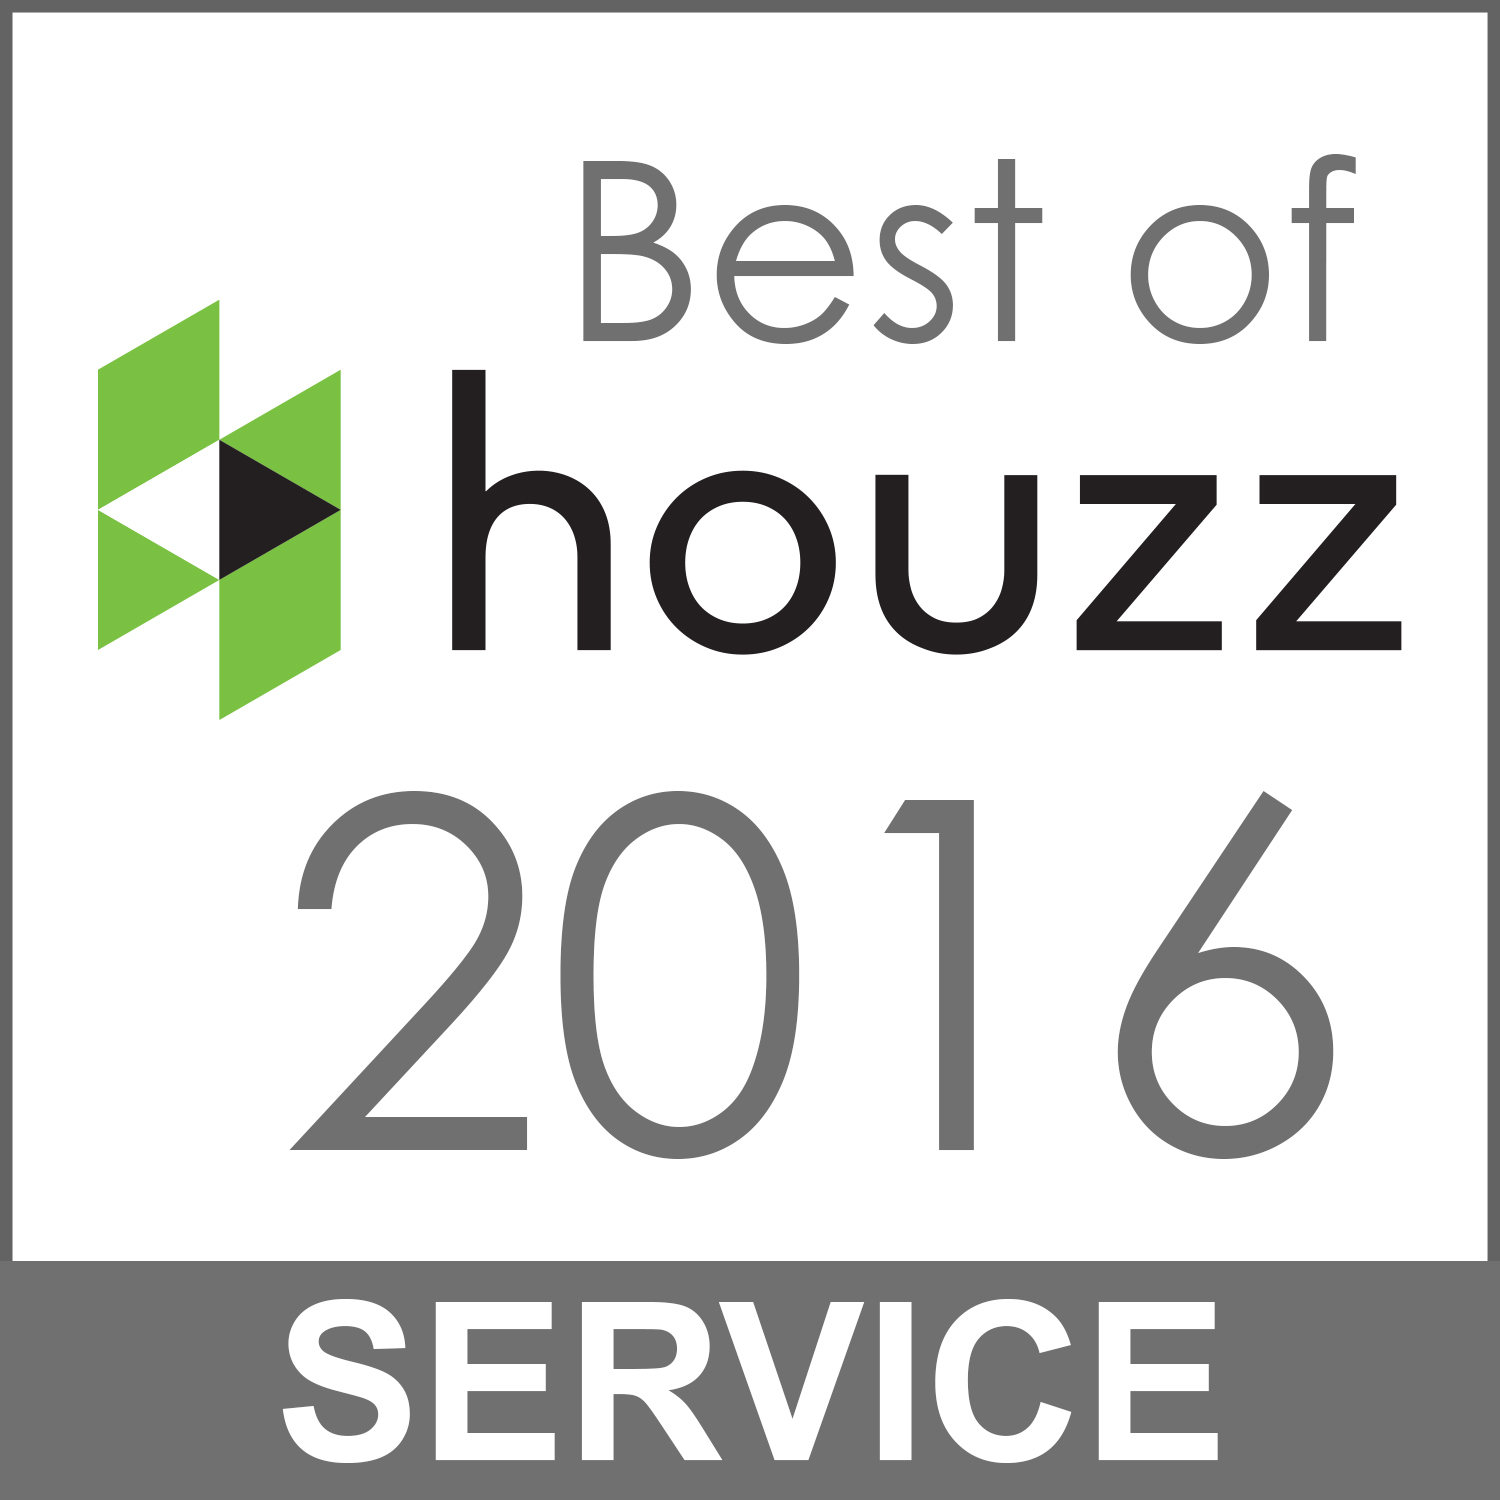 Best of Houzz - DeVol Design.Build.Remodel, Loveland, OH